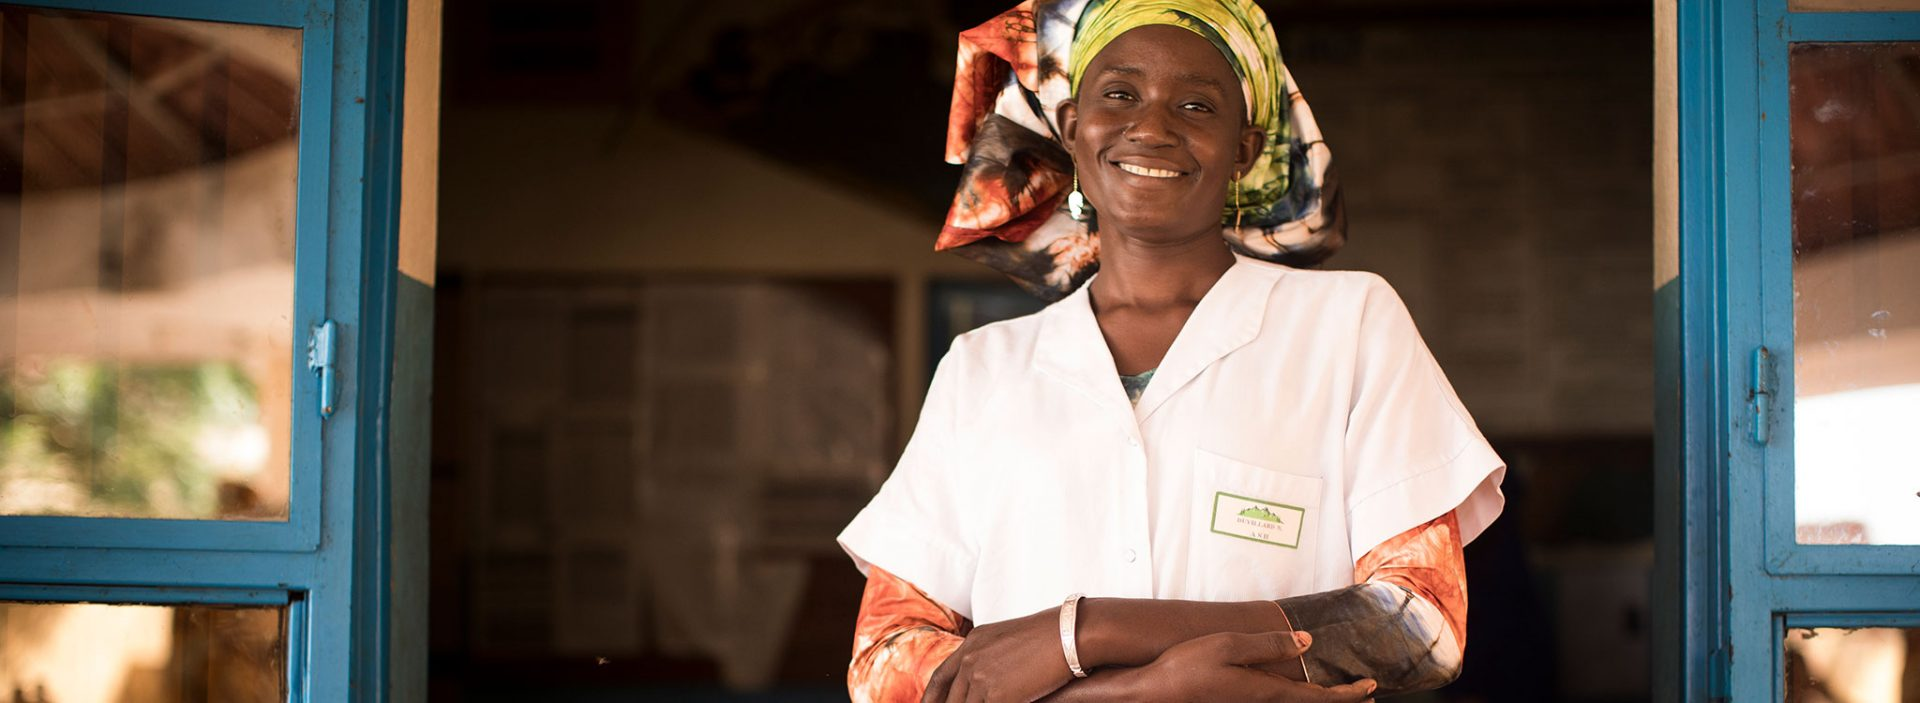 An Action Against Hunger community health worker in Mali.